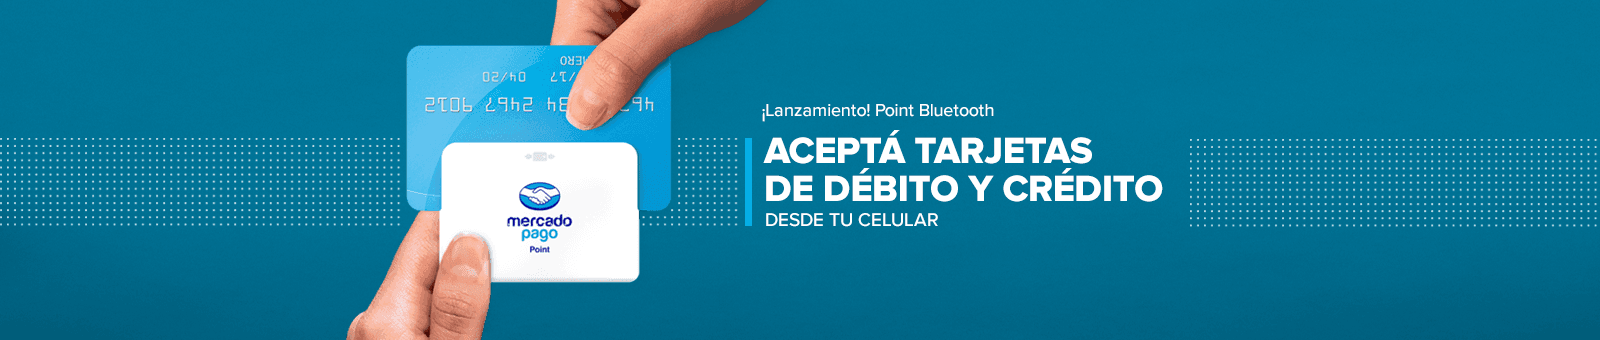 Mercado Pago Point Bluetooth